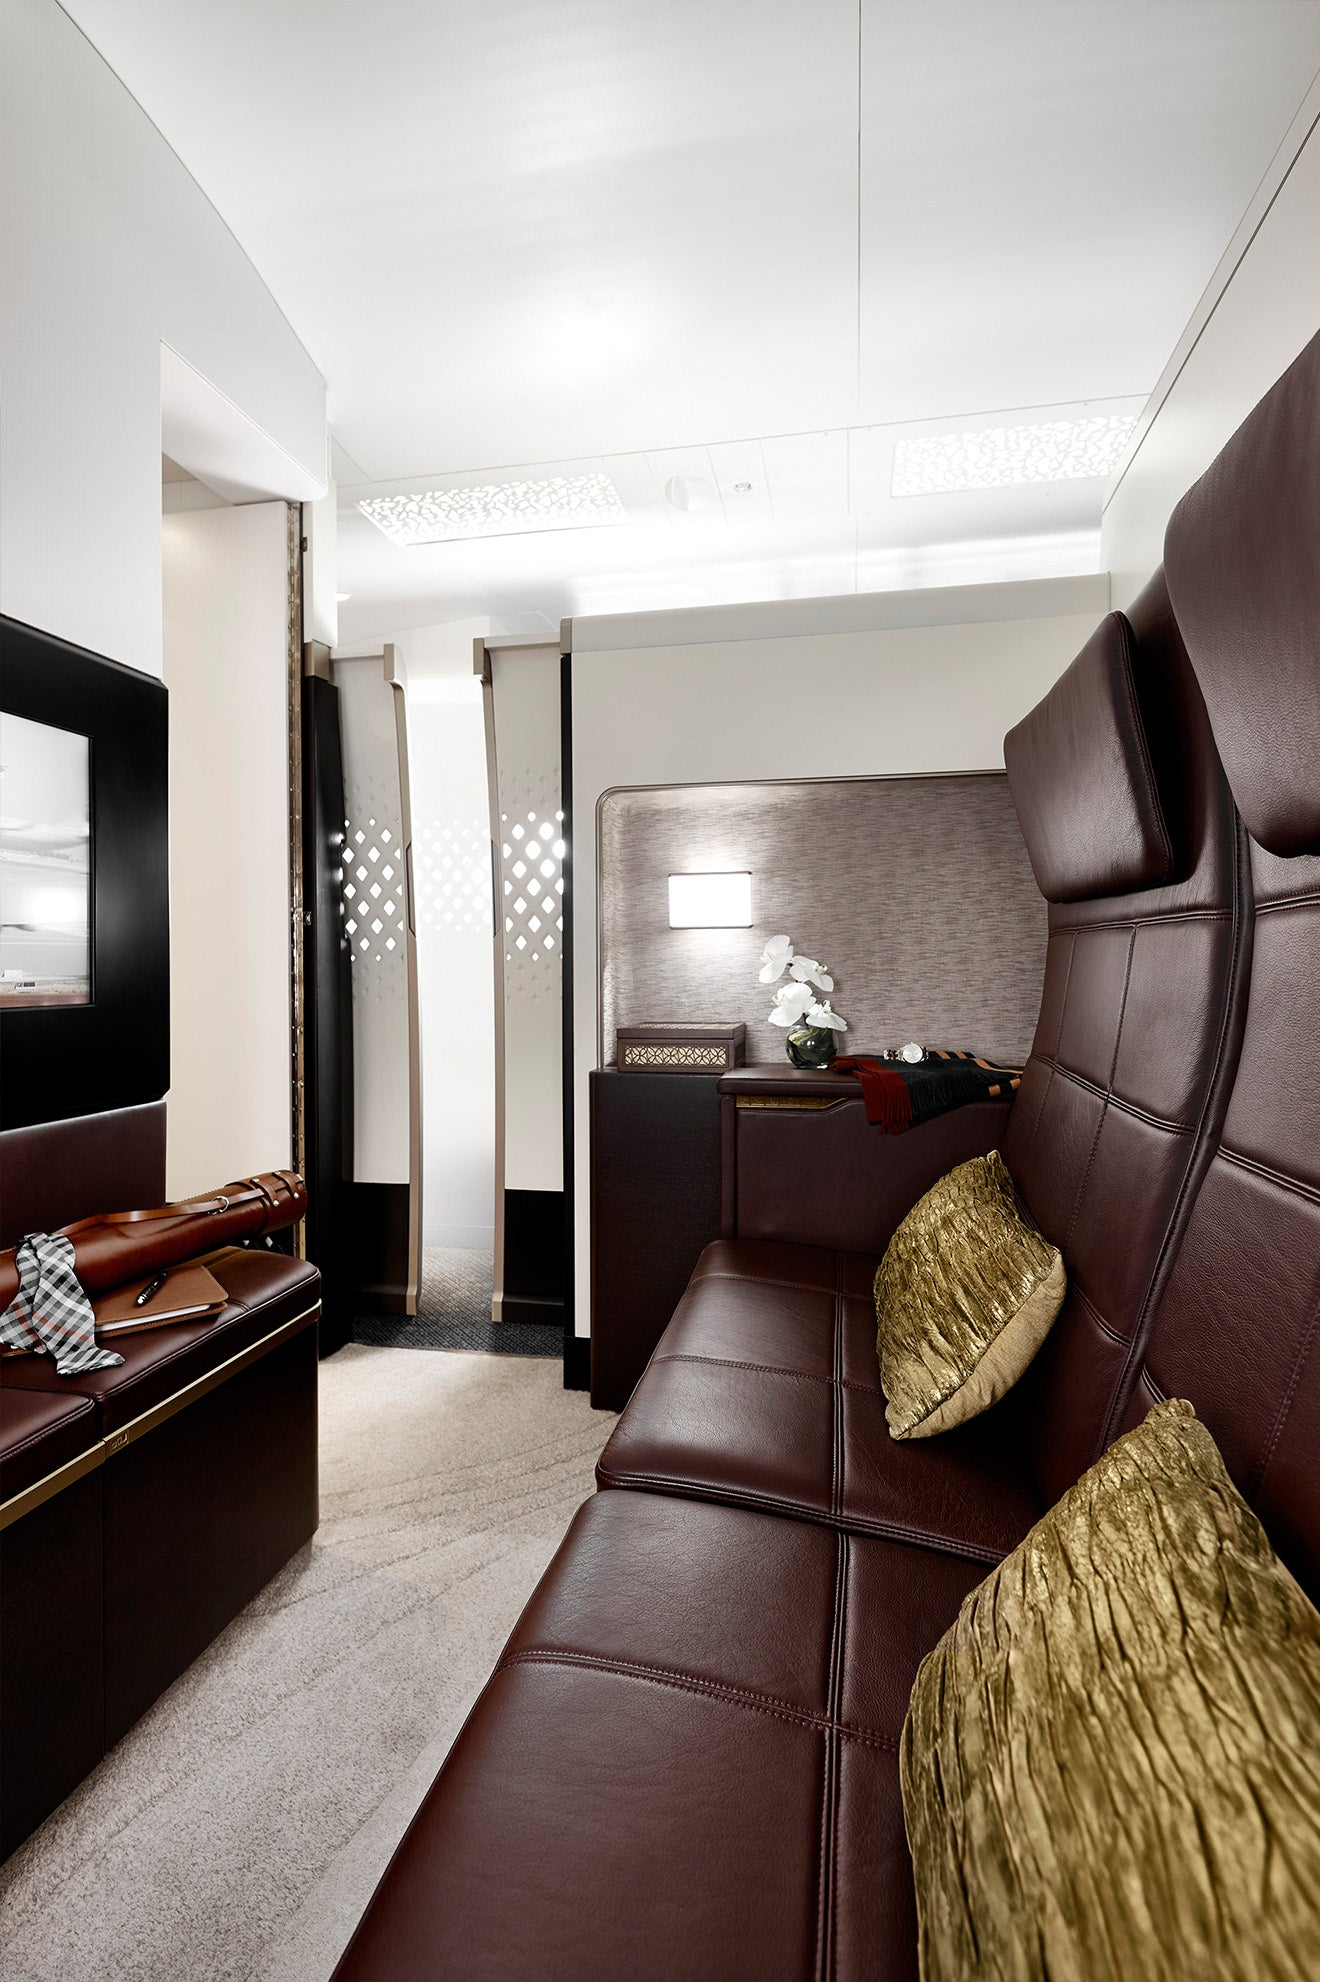 Etihad Airways The Residence three-room suite lounge space